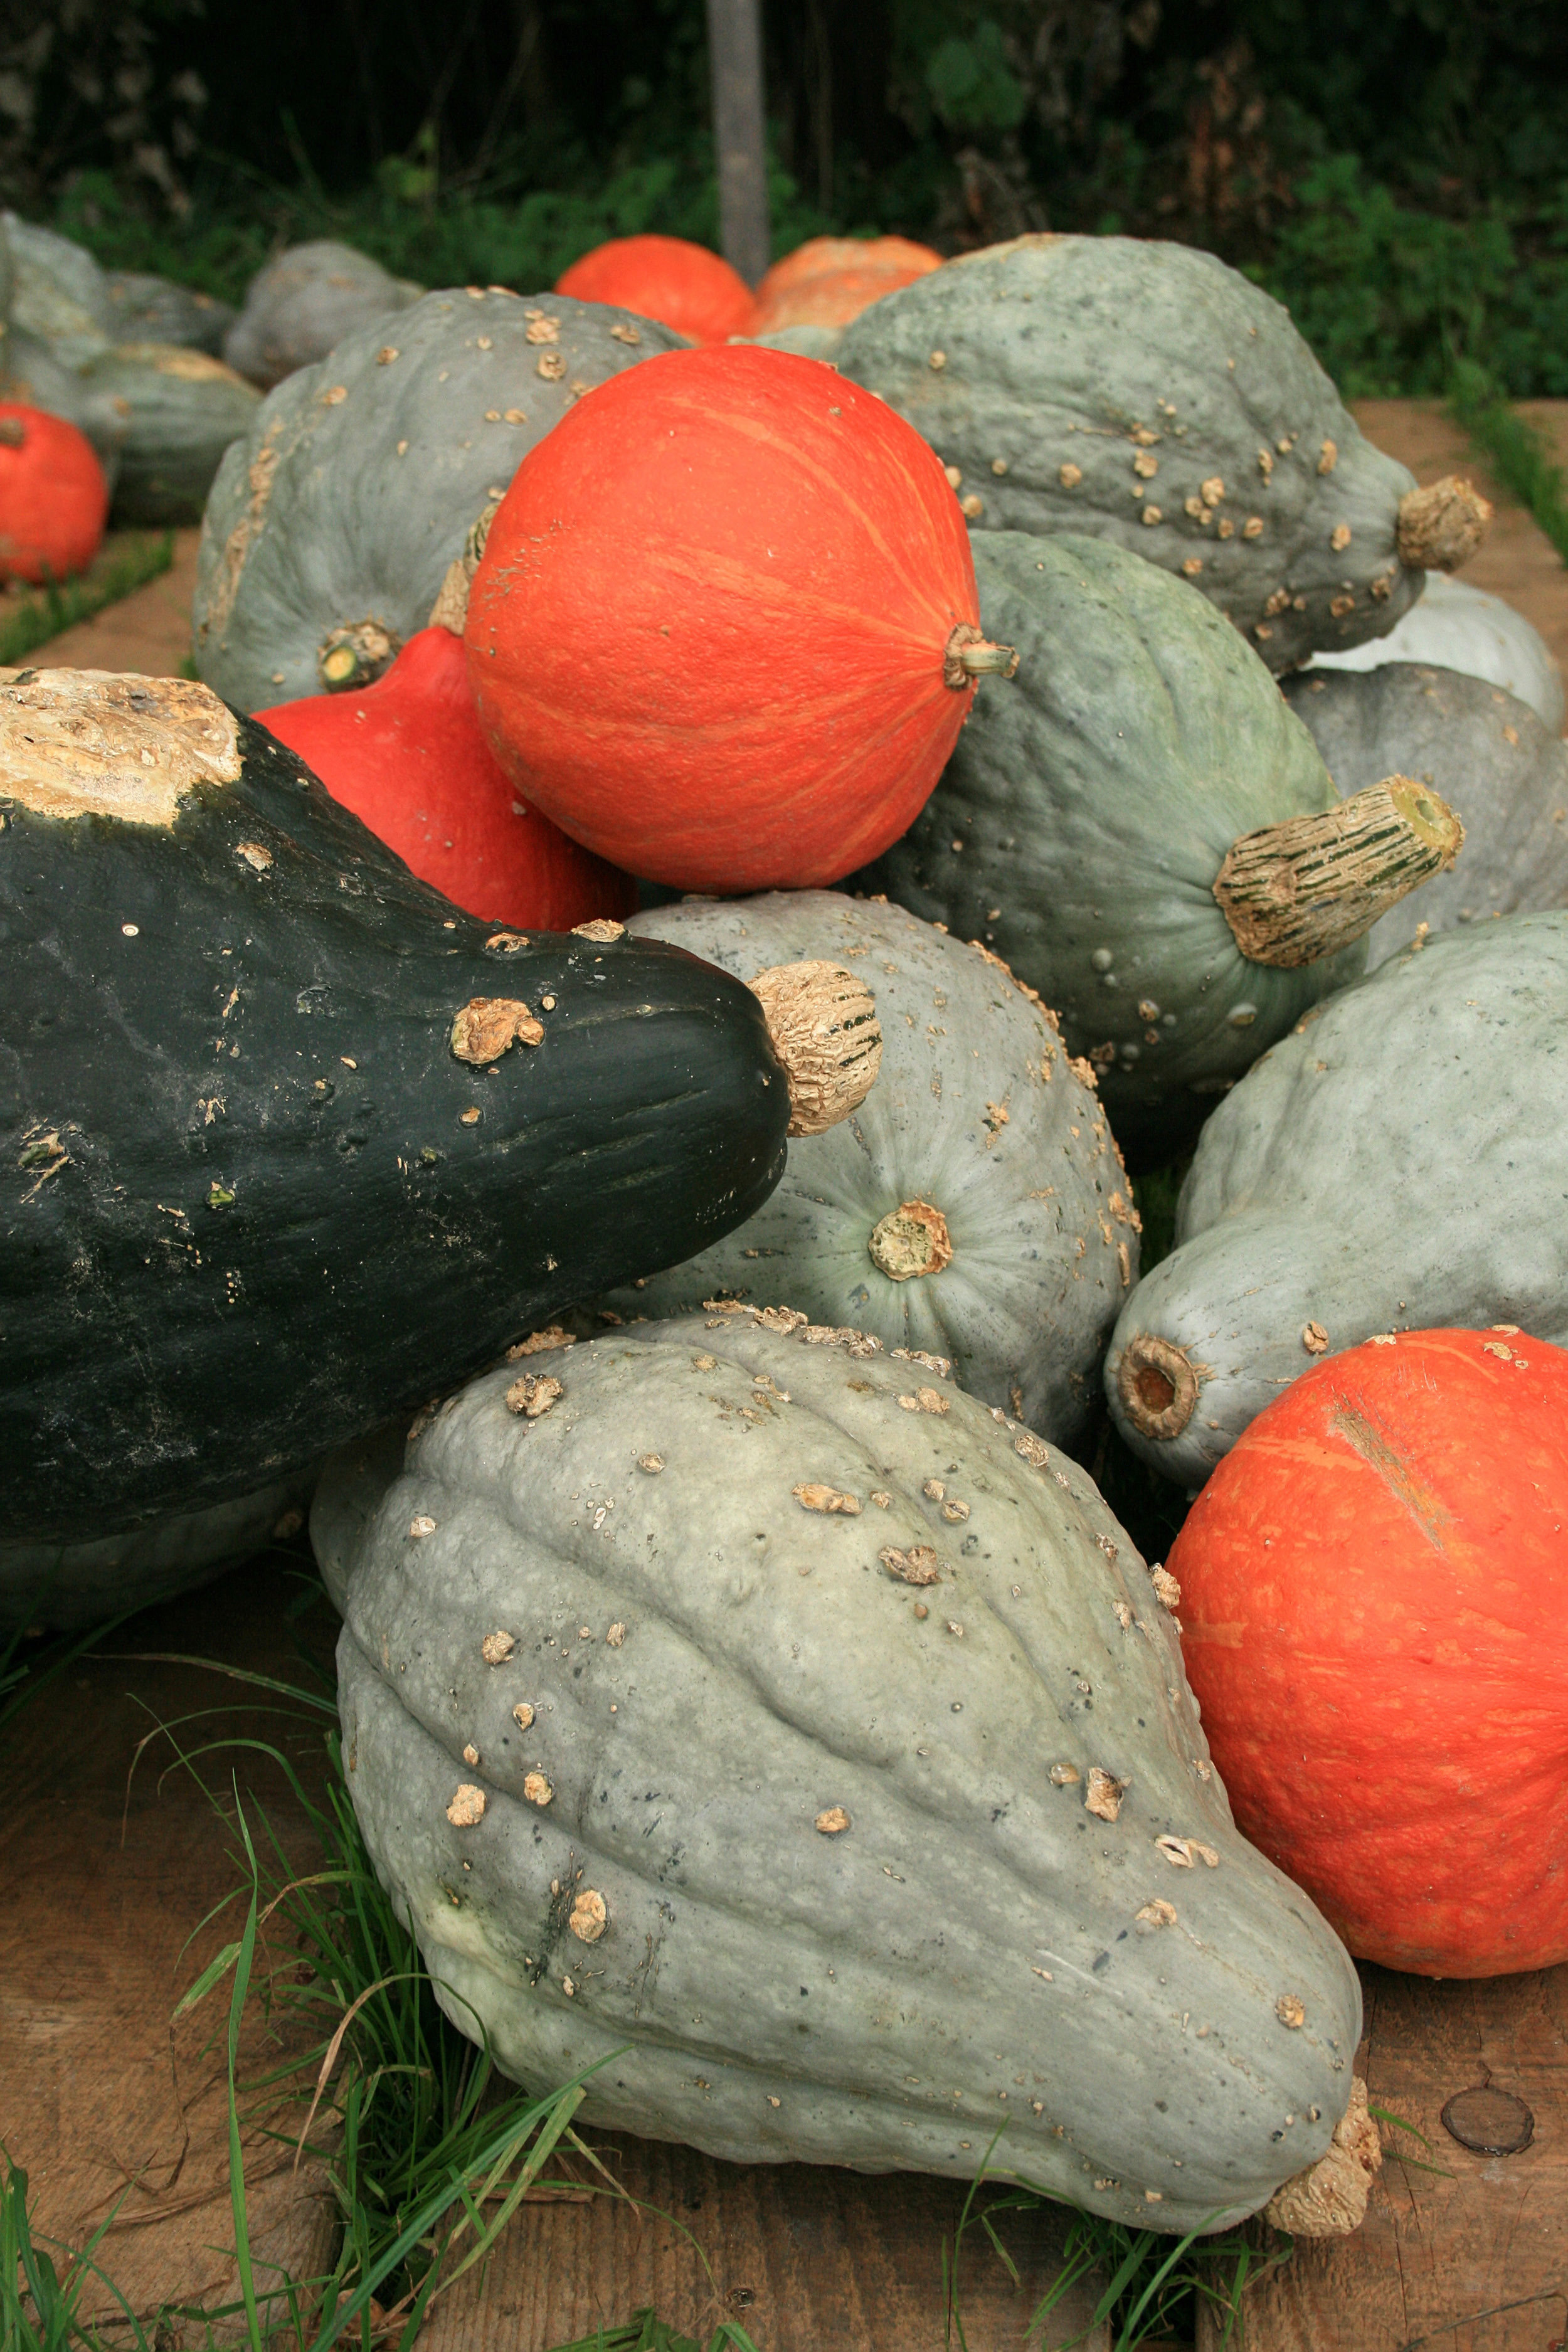 Please see recipes for hubbard squash below. Hubbard squash can be used in place of, and vice versa, sweet potato, pumpkin, and other squashes. Cut in half and place flesh-side down on a cookie sheet, baking in a 400 degree oven until tender.